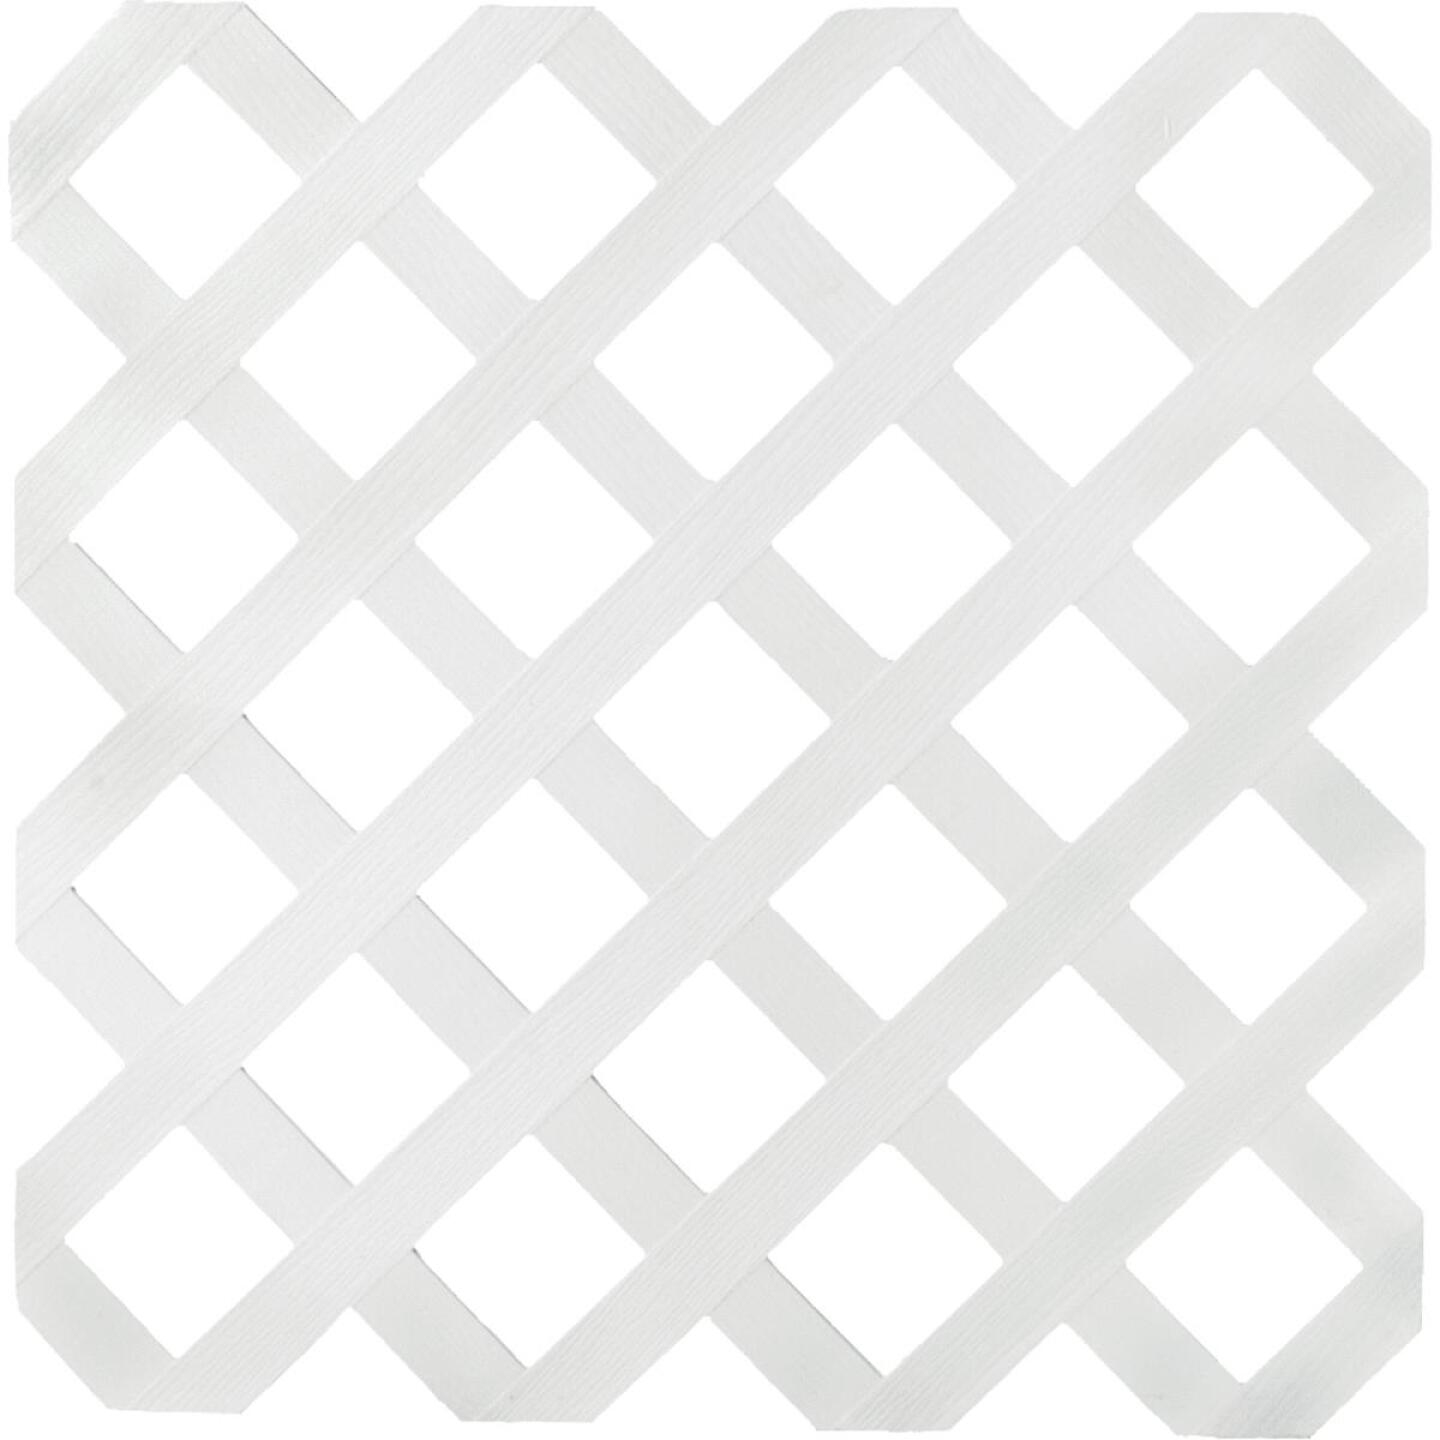 Dimensions 4 Ft. W x 8 Ft. L x 1/8 In. Thick White Vinyl Lattice Panel Image 1